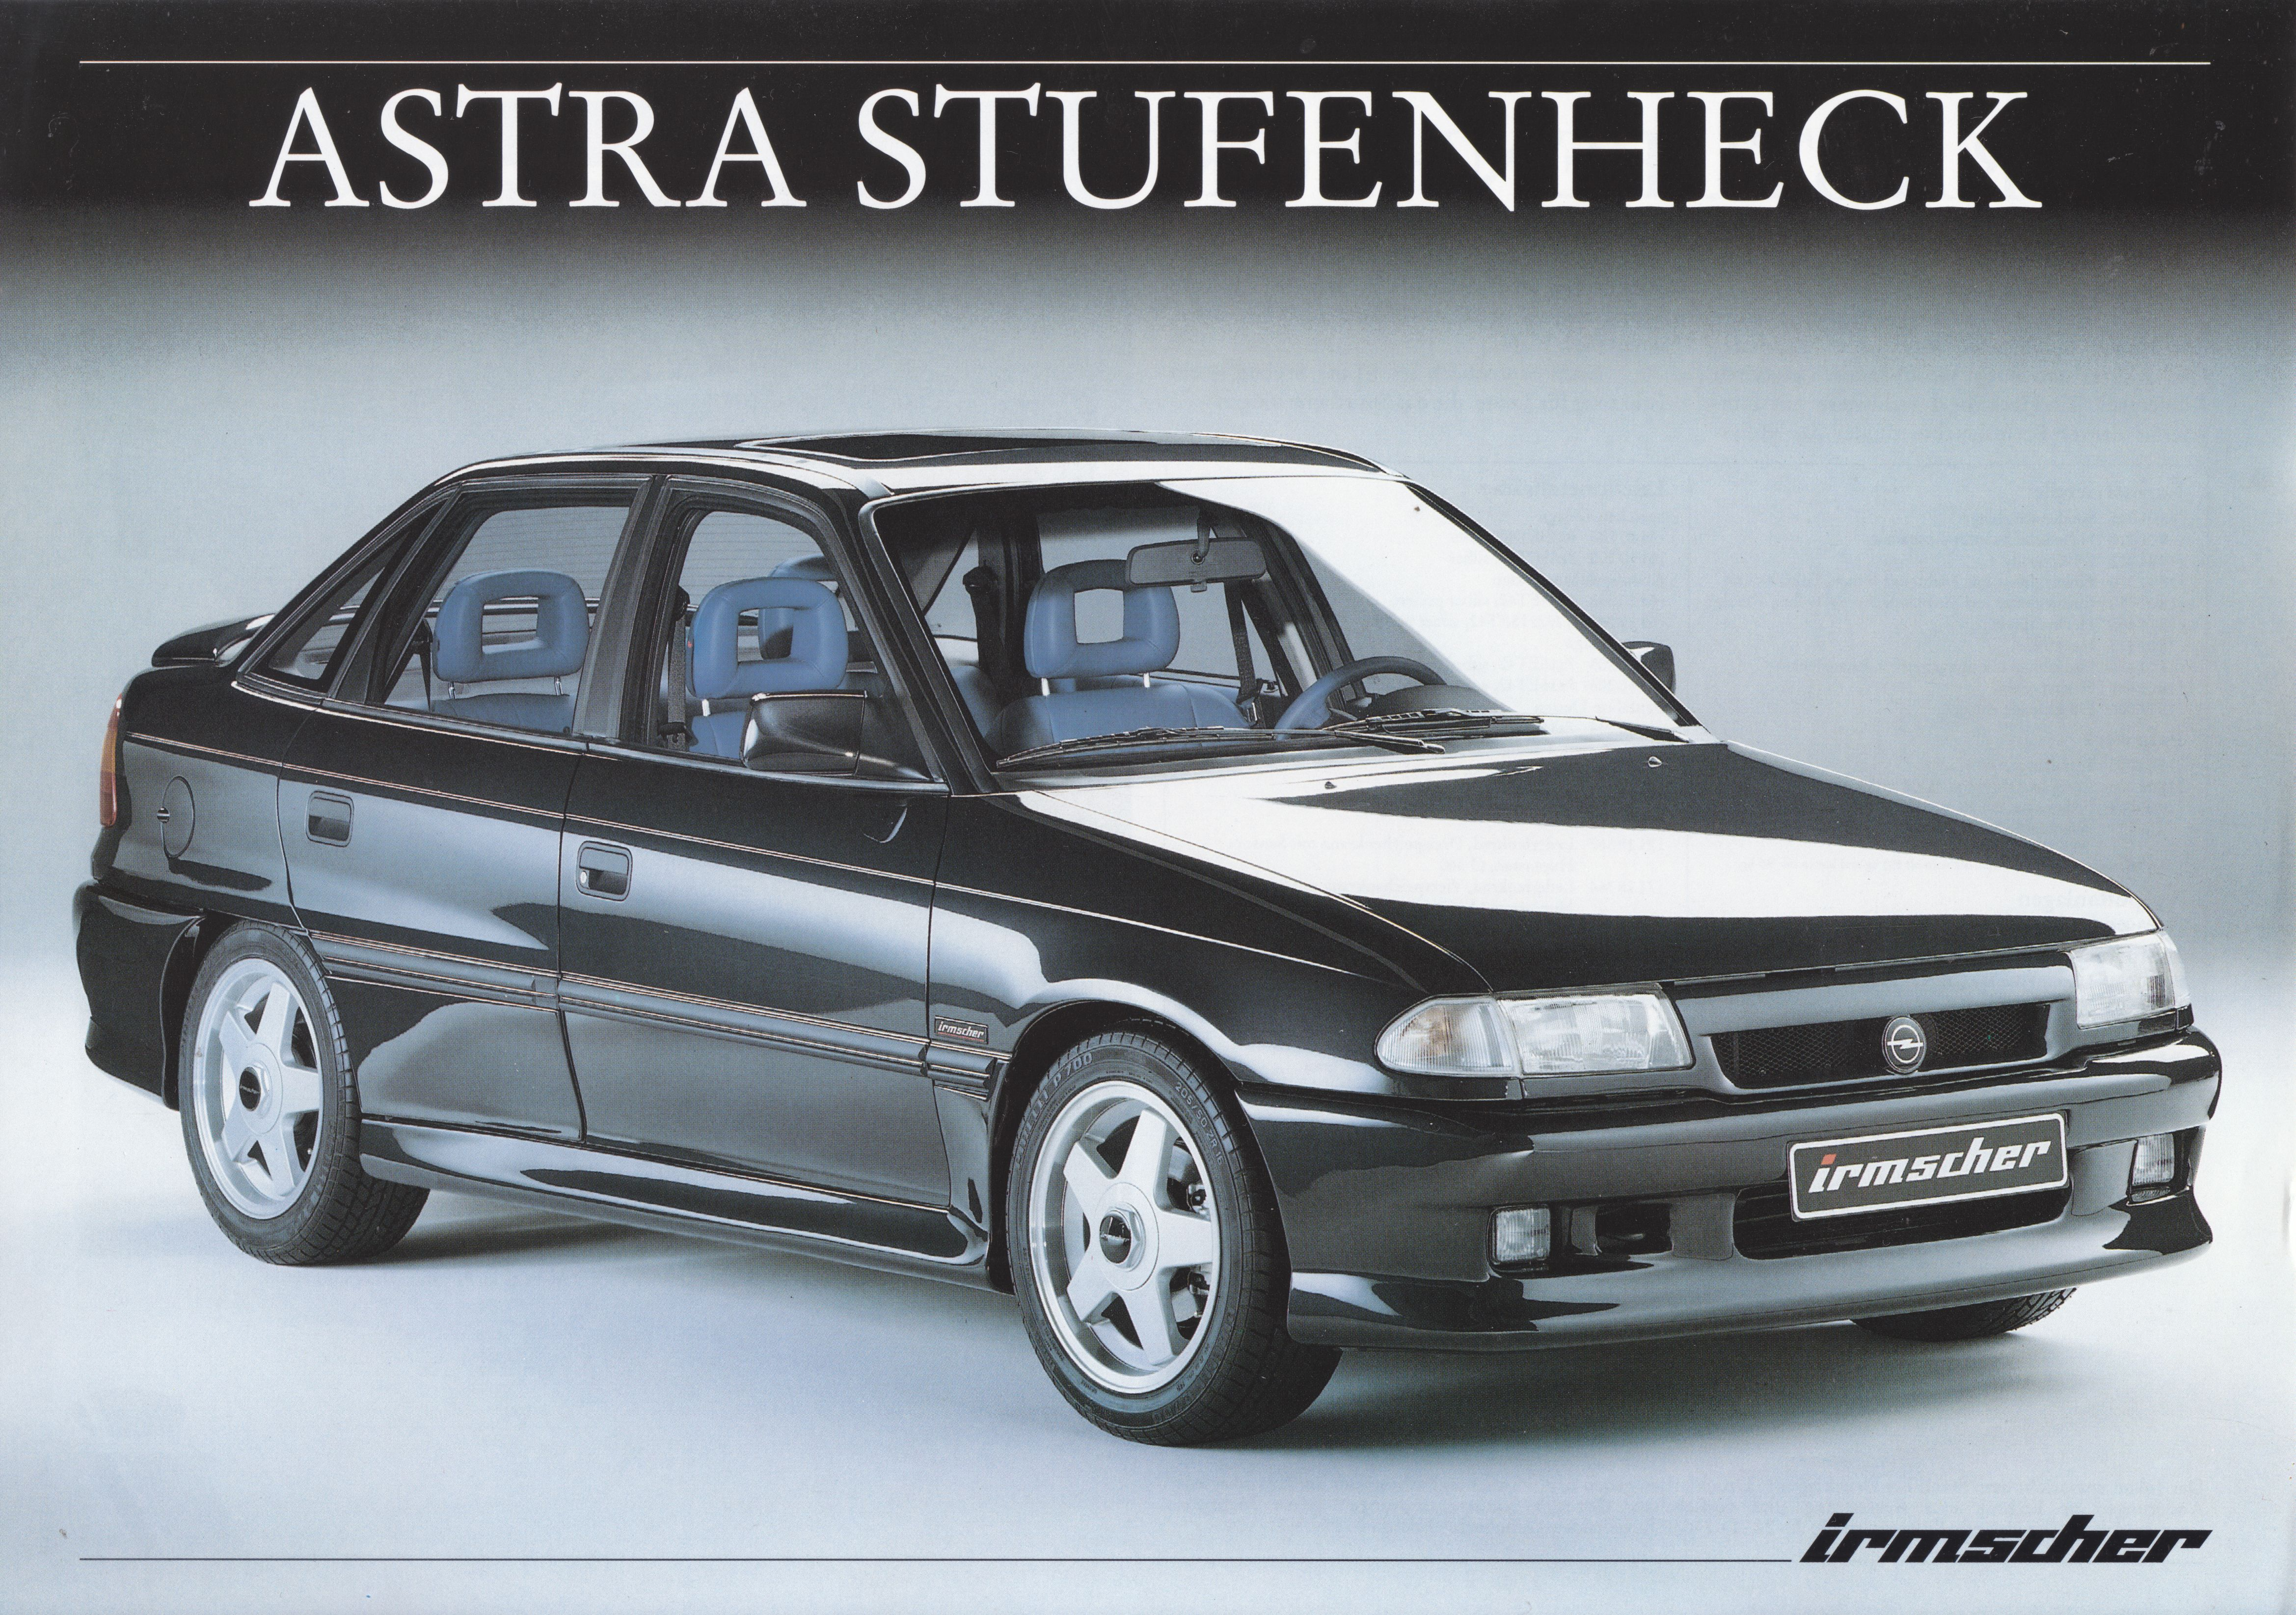 Opel Astra Sedan By Irmscher Leaflet Dated 11 1993 Opel Vauxhall Cars For Sale